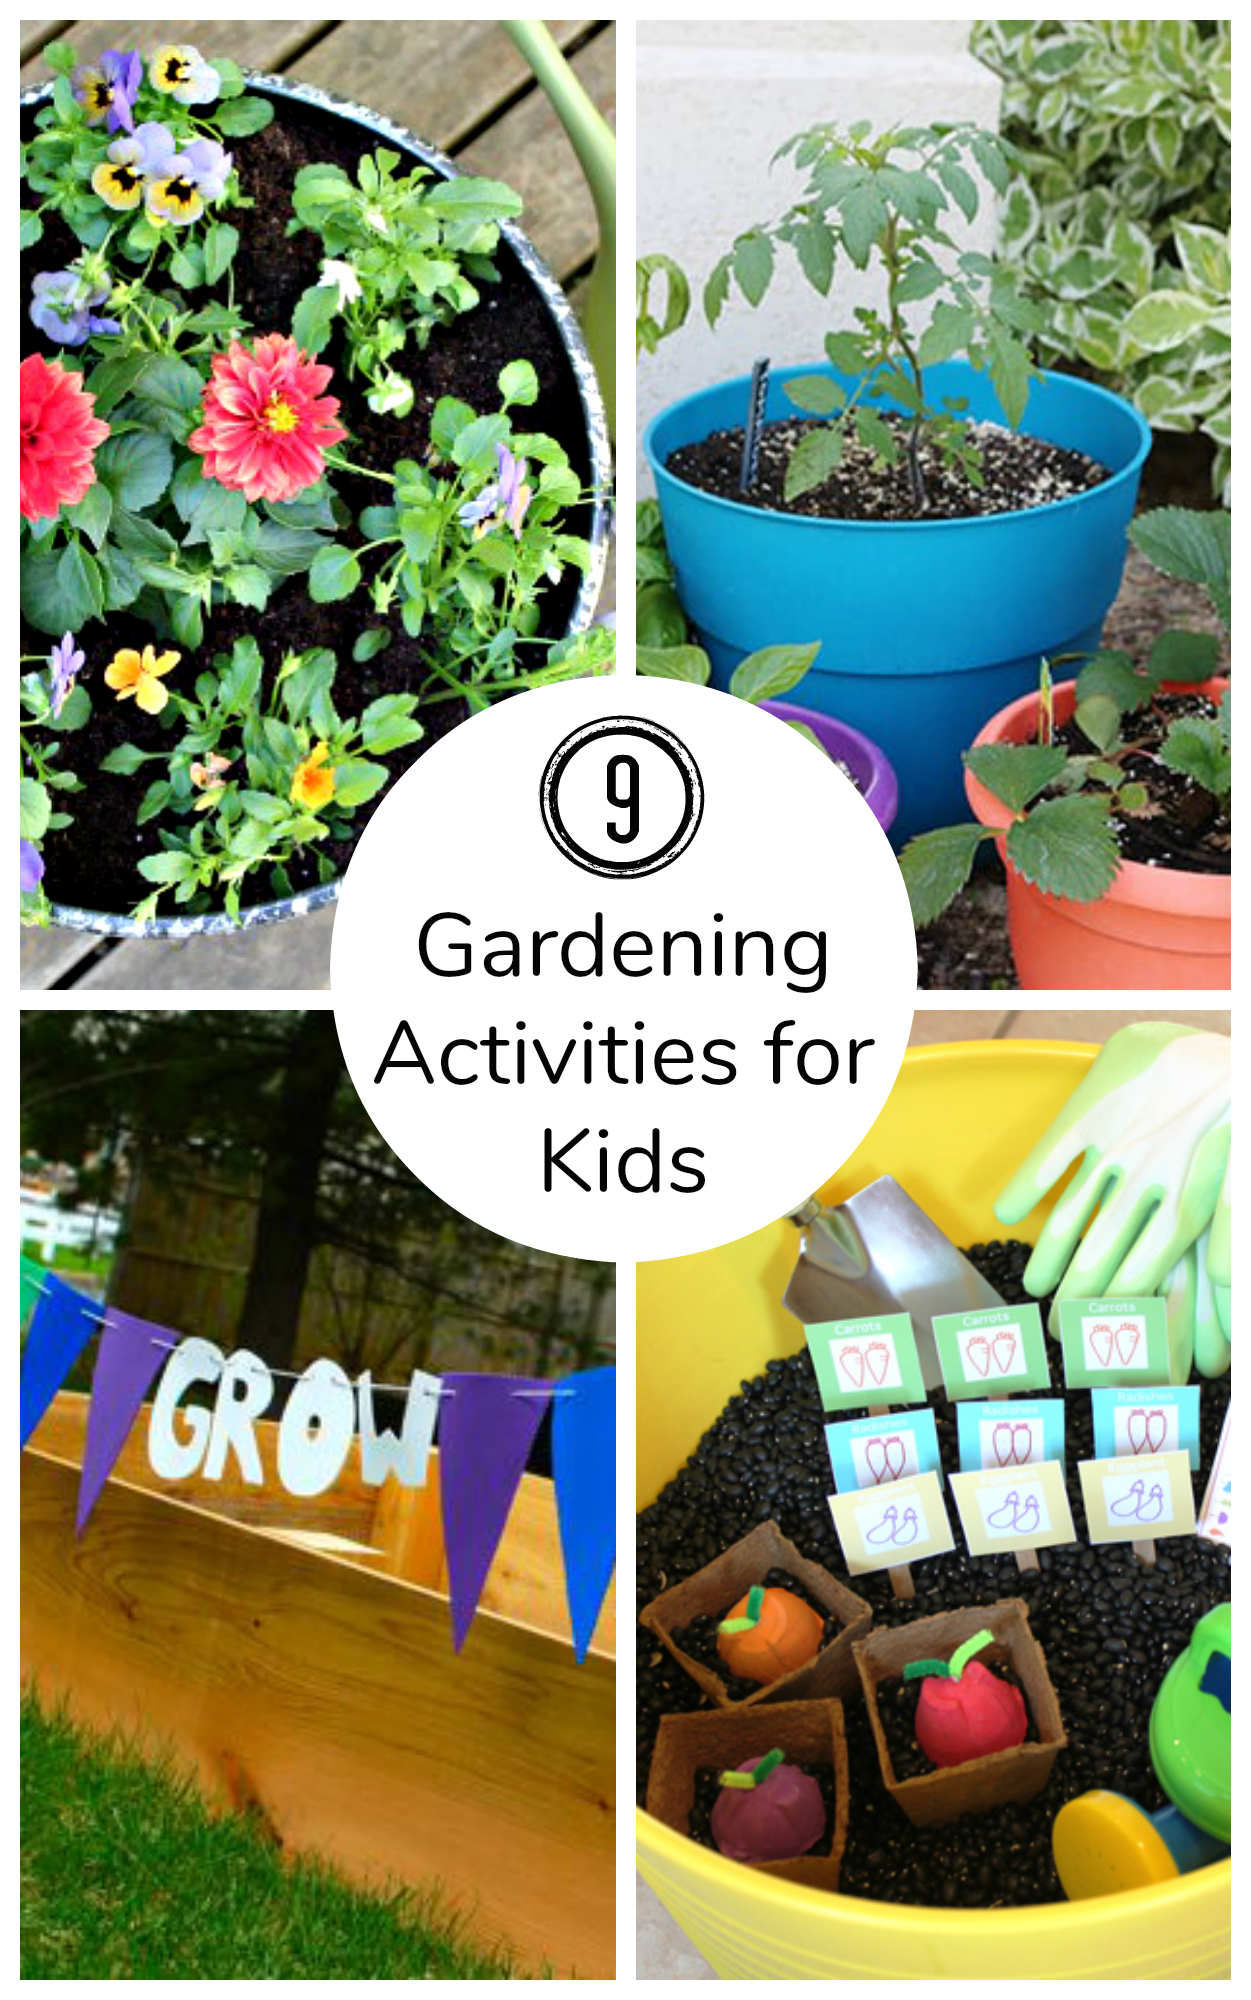 9 Now Ideas Gardening Activities For Kids